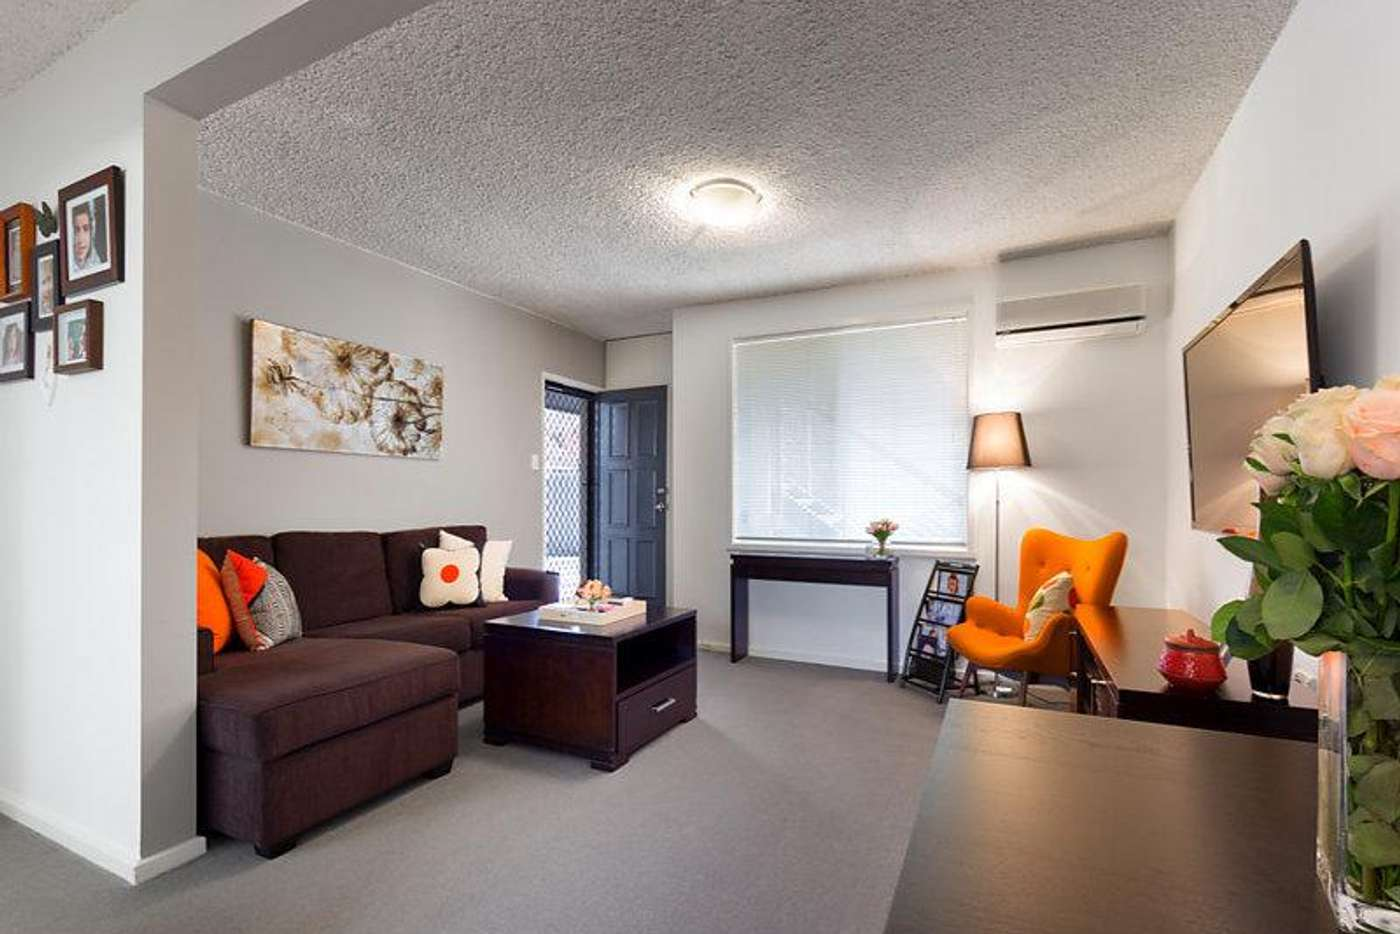 Main view of Homely apartment listing, 5/15 Cassels Road, Brunswick VIC 3056